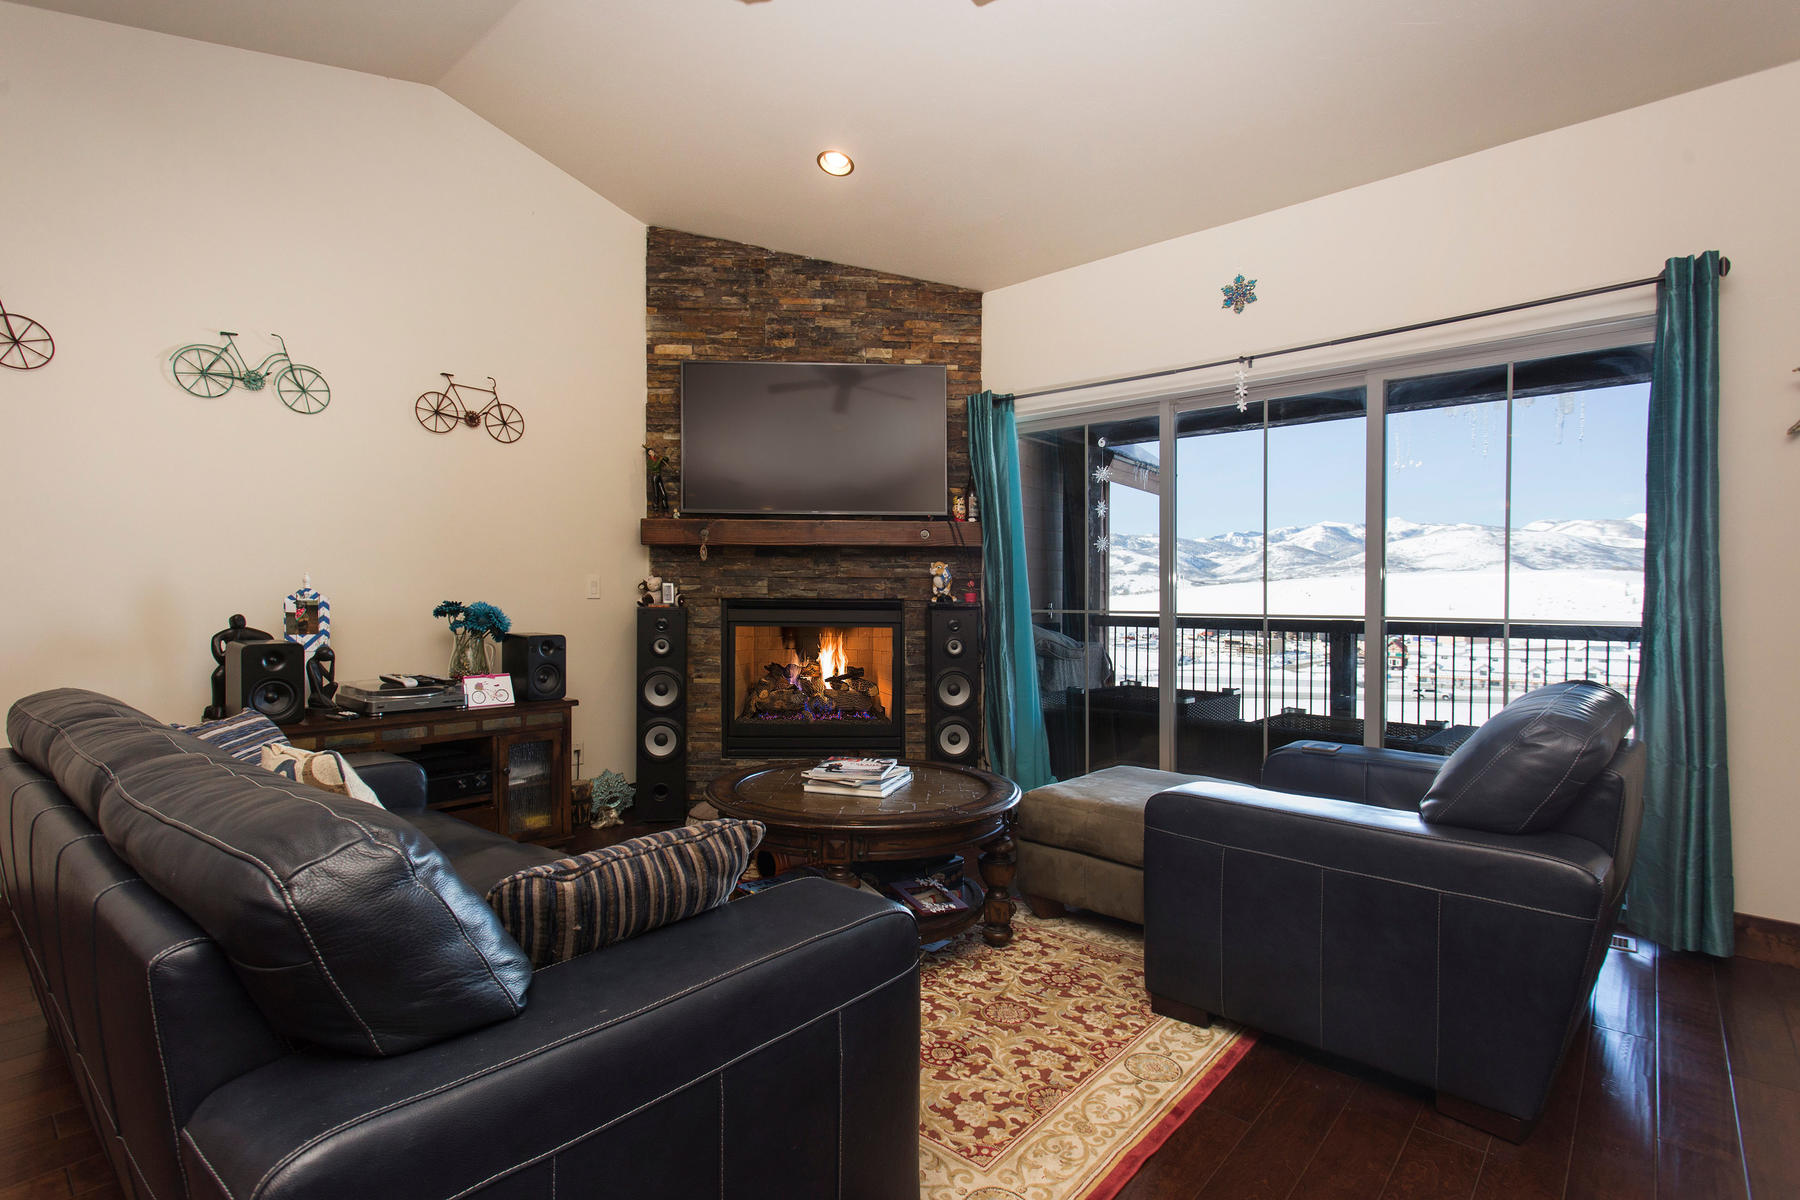 Townhouse for Sale at Fantastic Views From this Black Rock Ridge Townhome 14155 N Council Fire Trl Heber City, Utah 84032 United States